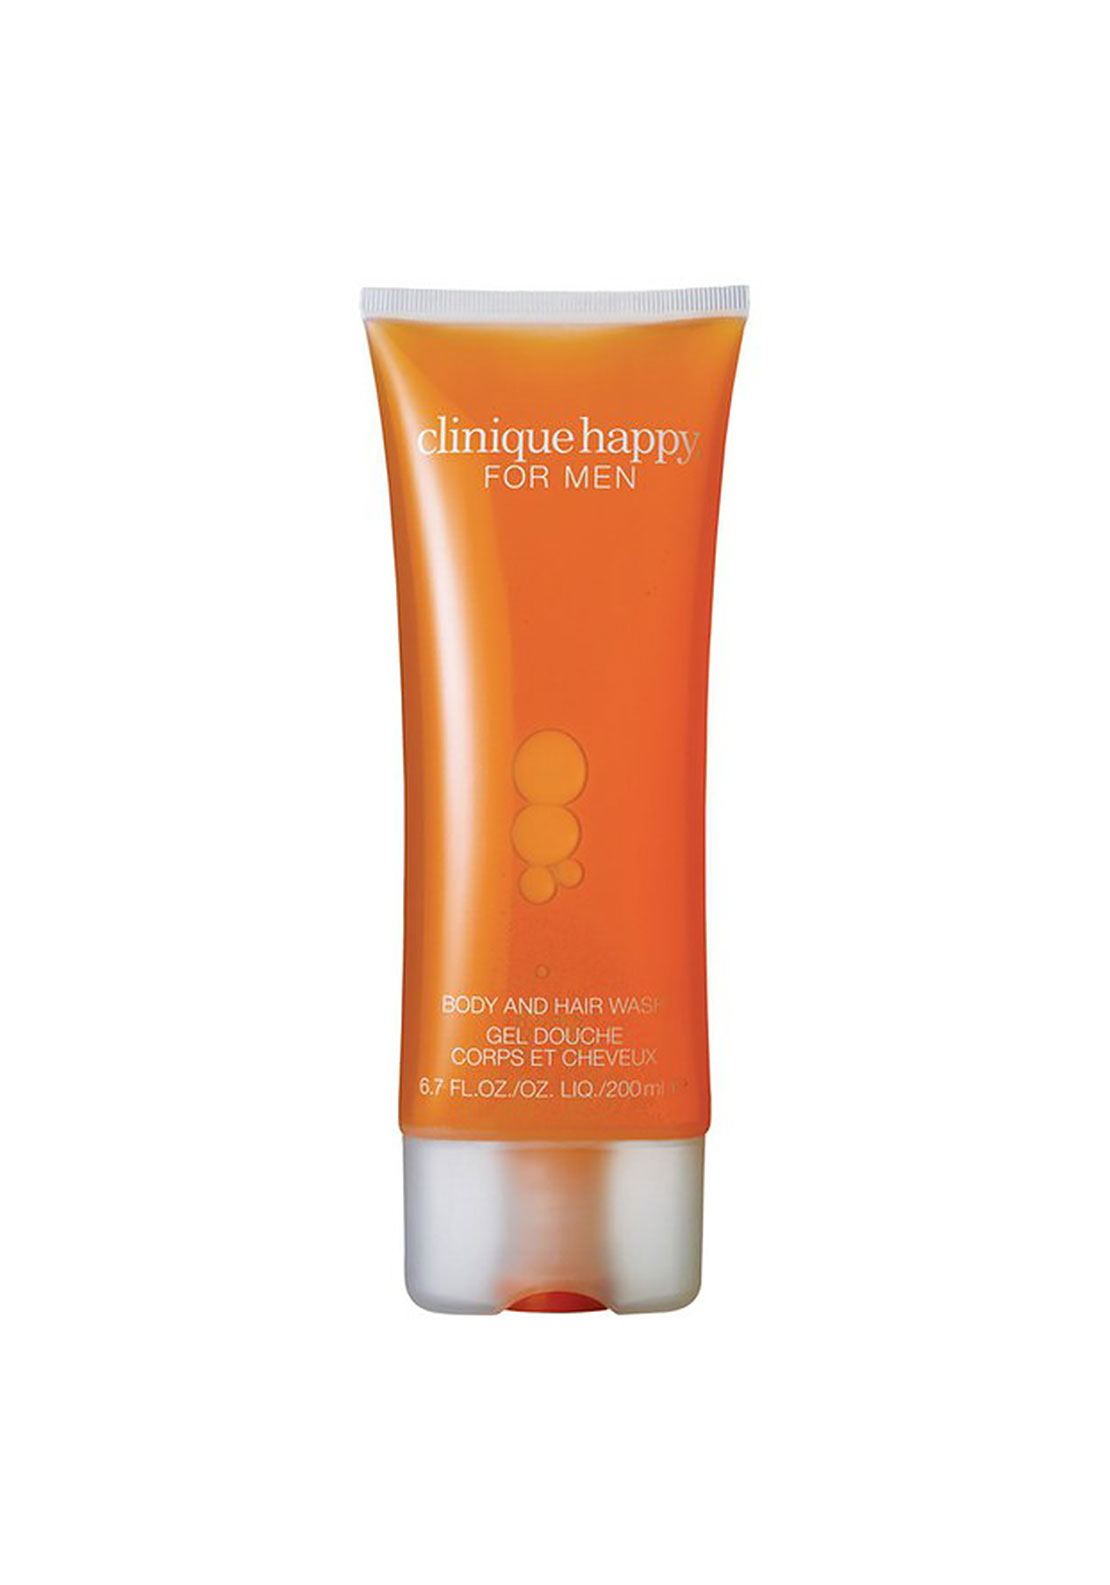 Clinique Happy For Men Body & Hair Wash